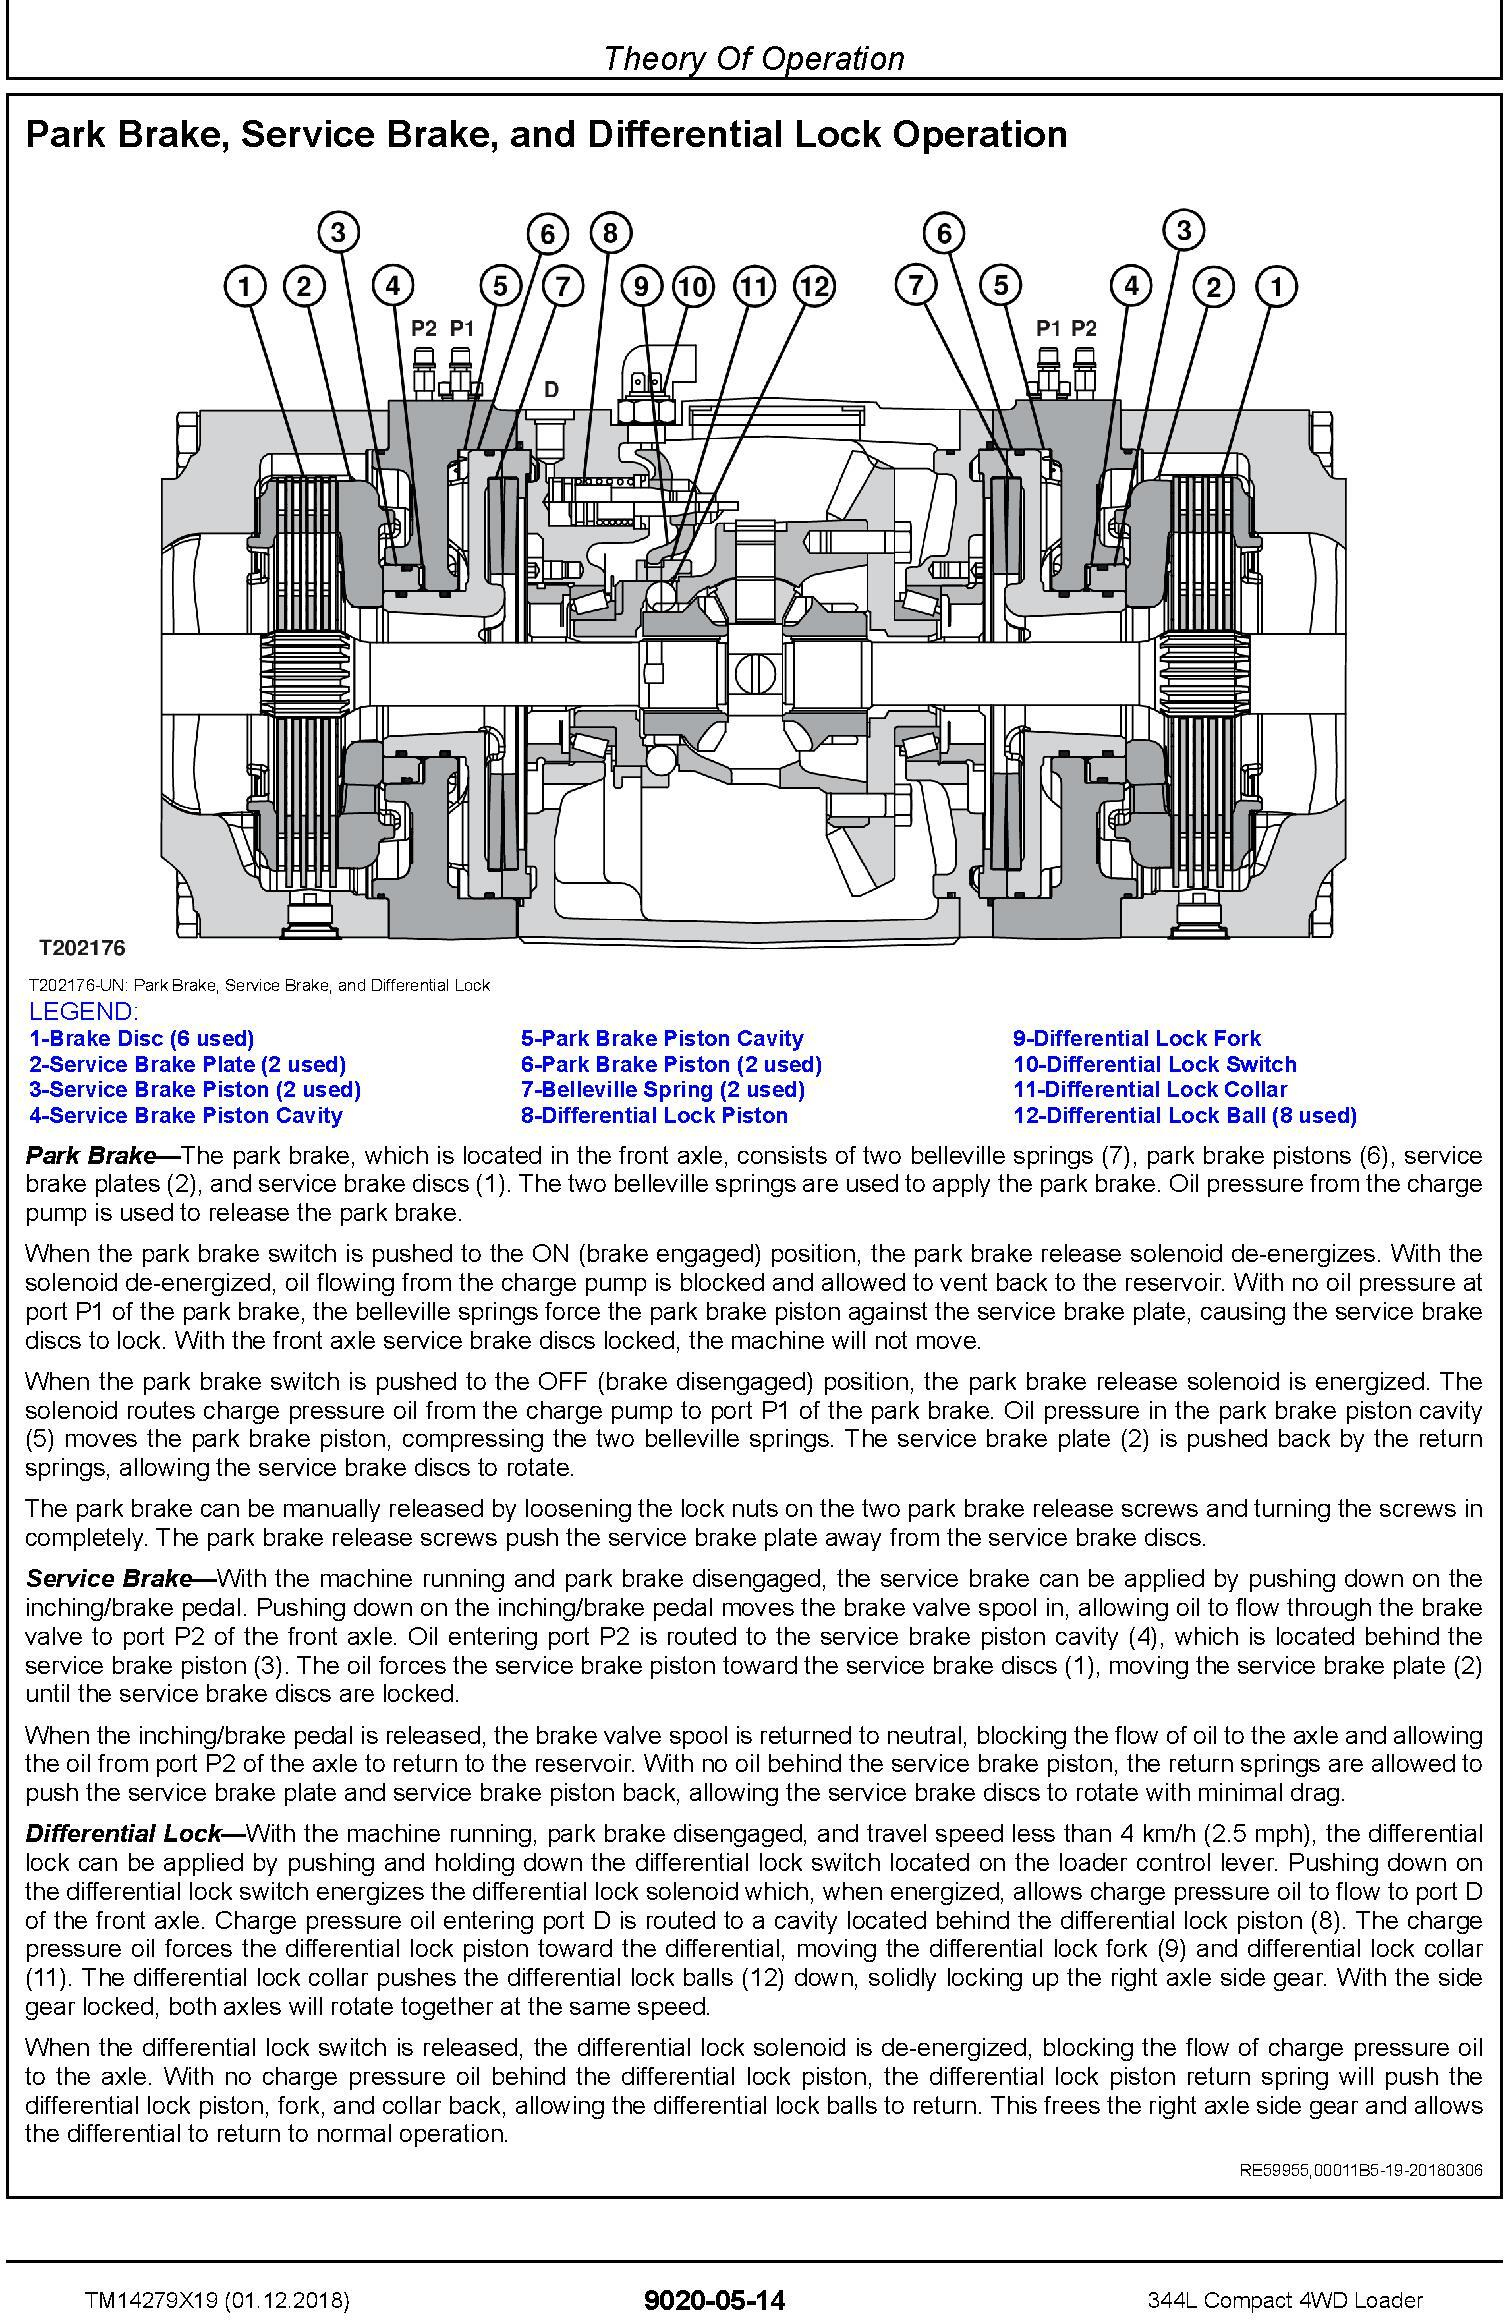 John Deere 344L (SN.B043142-) Compact 4WD Loader Diagnostic Technical Service Manual (TM14279X19) - 3